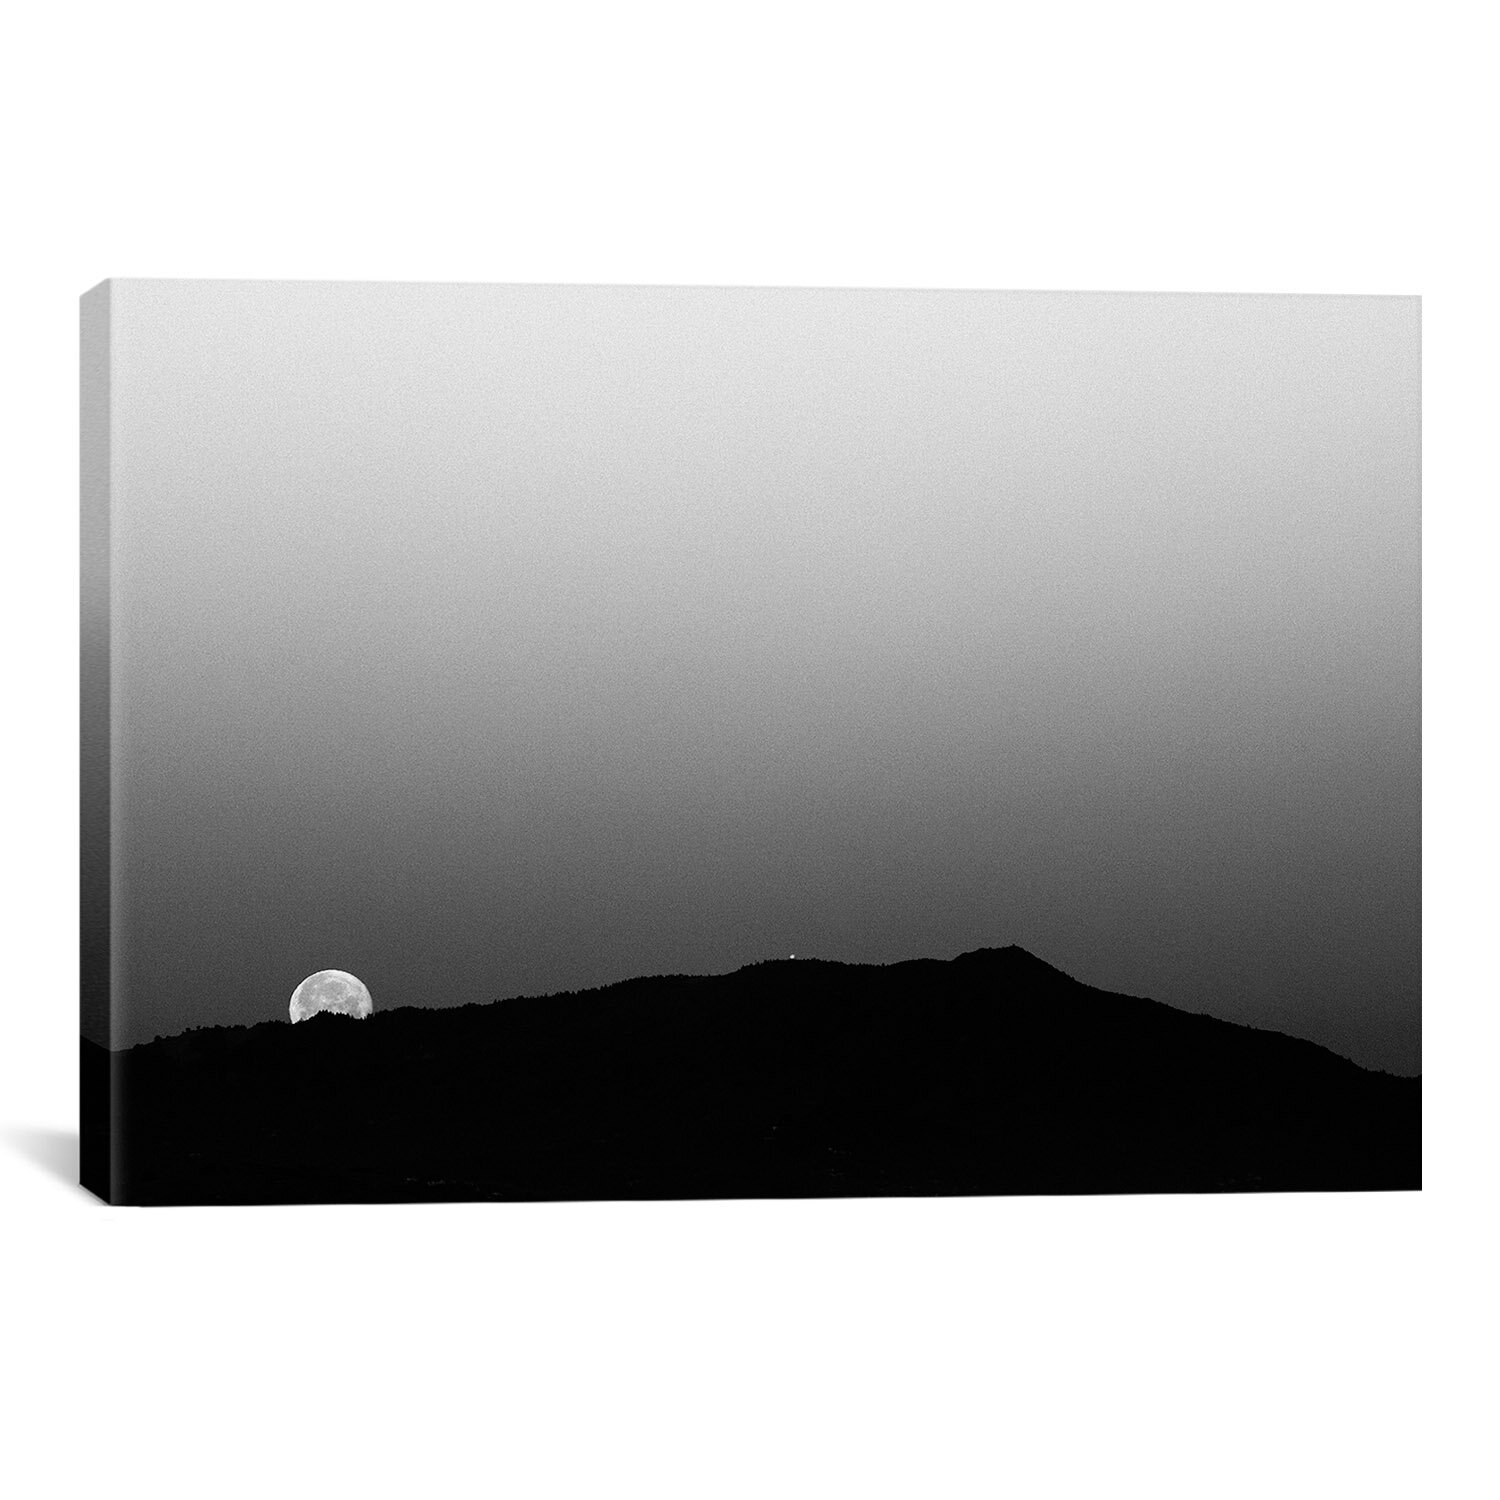 Ebern Designs Surfactant By Geoffrey Ansel Agrons Photographic Print On Wrapped Canvas Wayfair